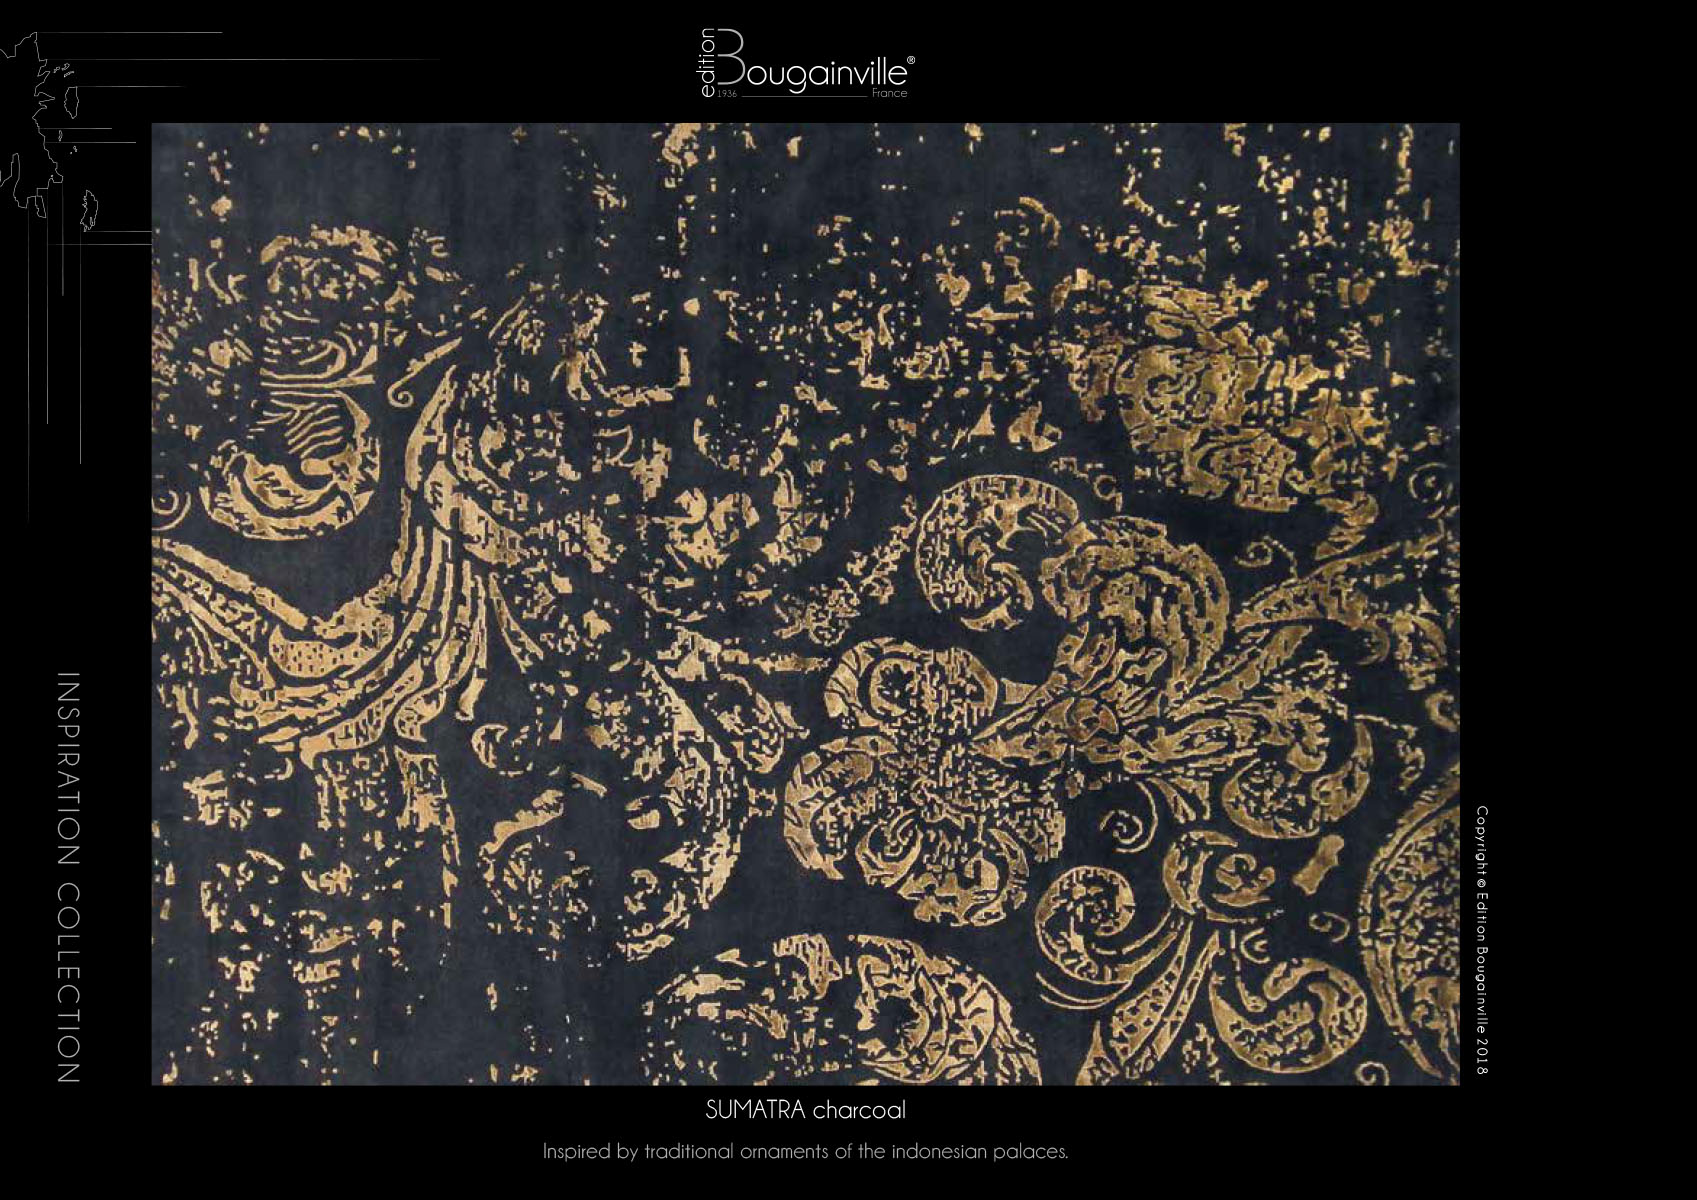 Ковер Edition Bougainville, SUMATRA charcoal